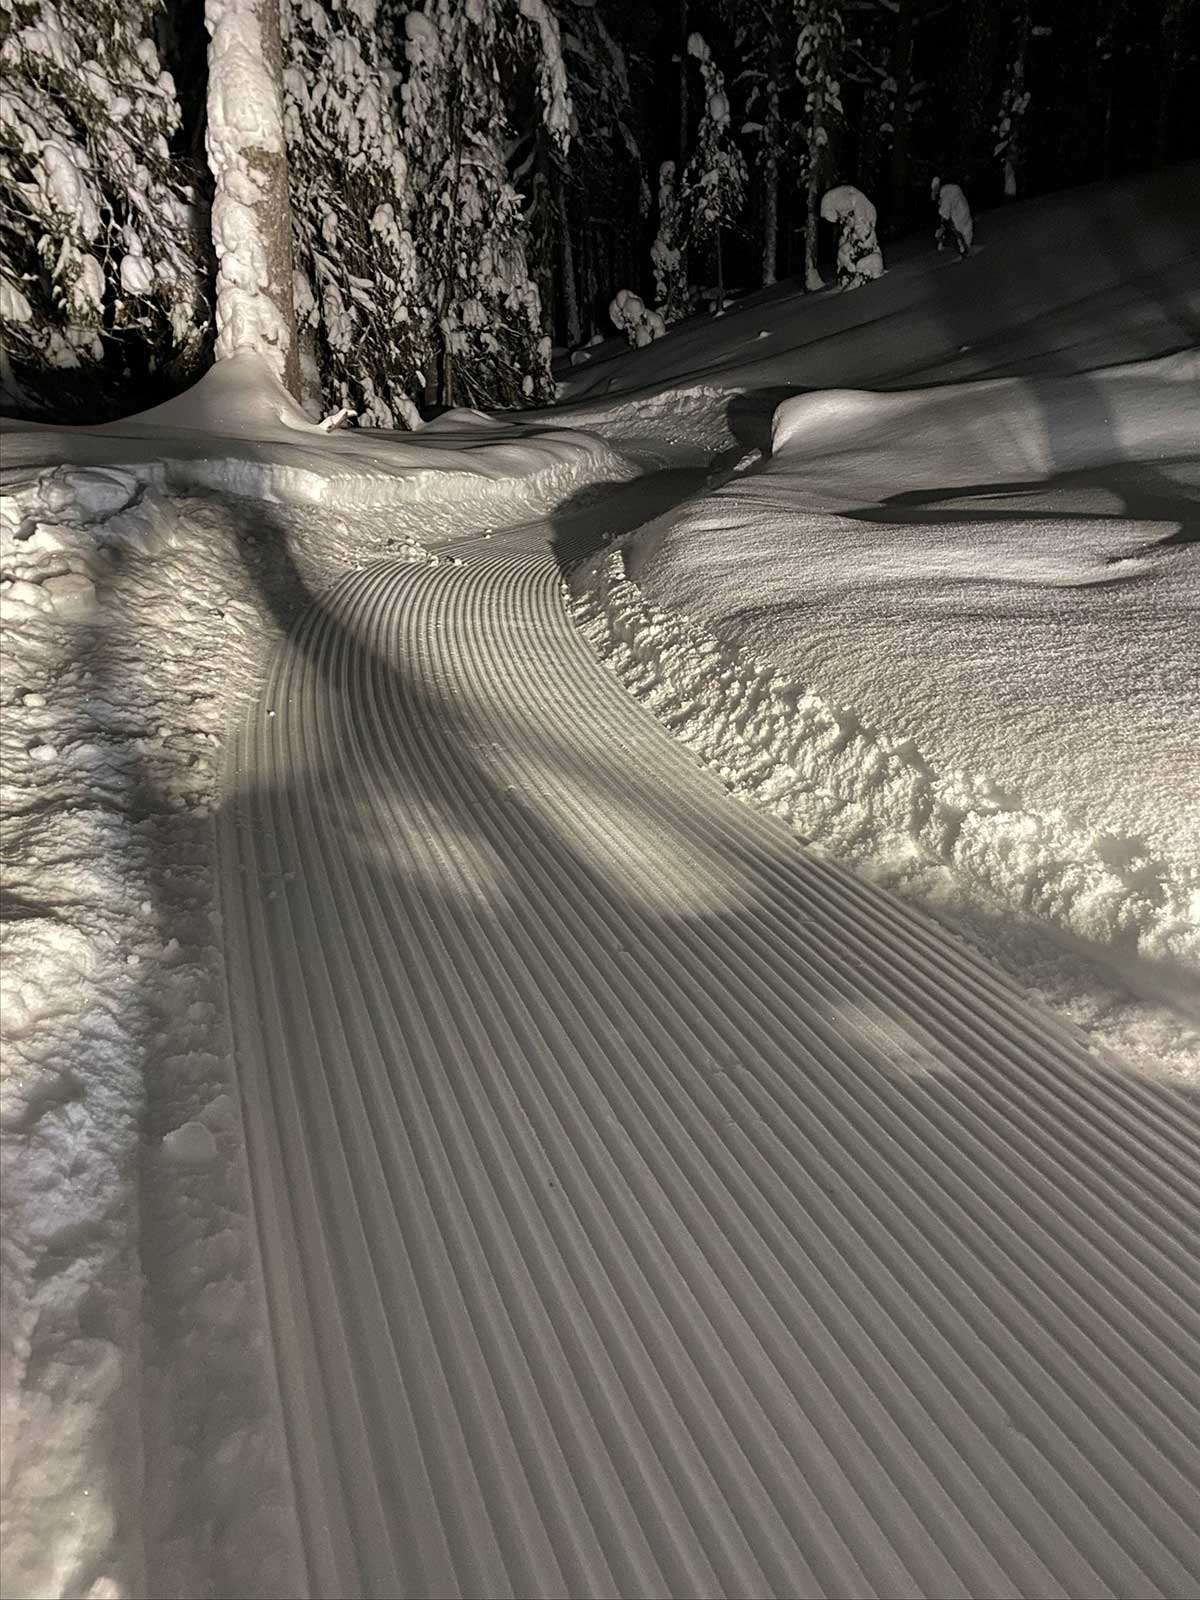 trailander bike route plane smooths snow covered mountain bike trails for fat biking